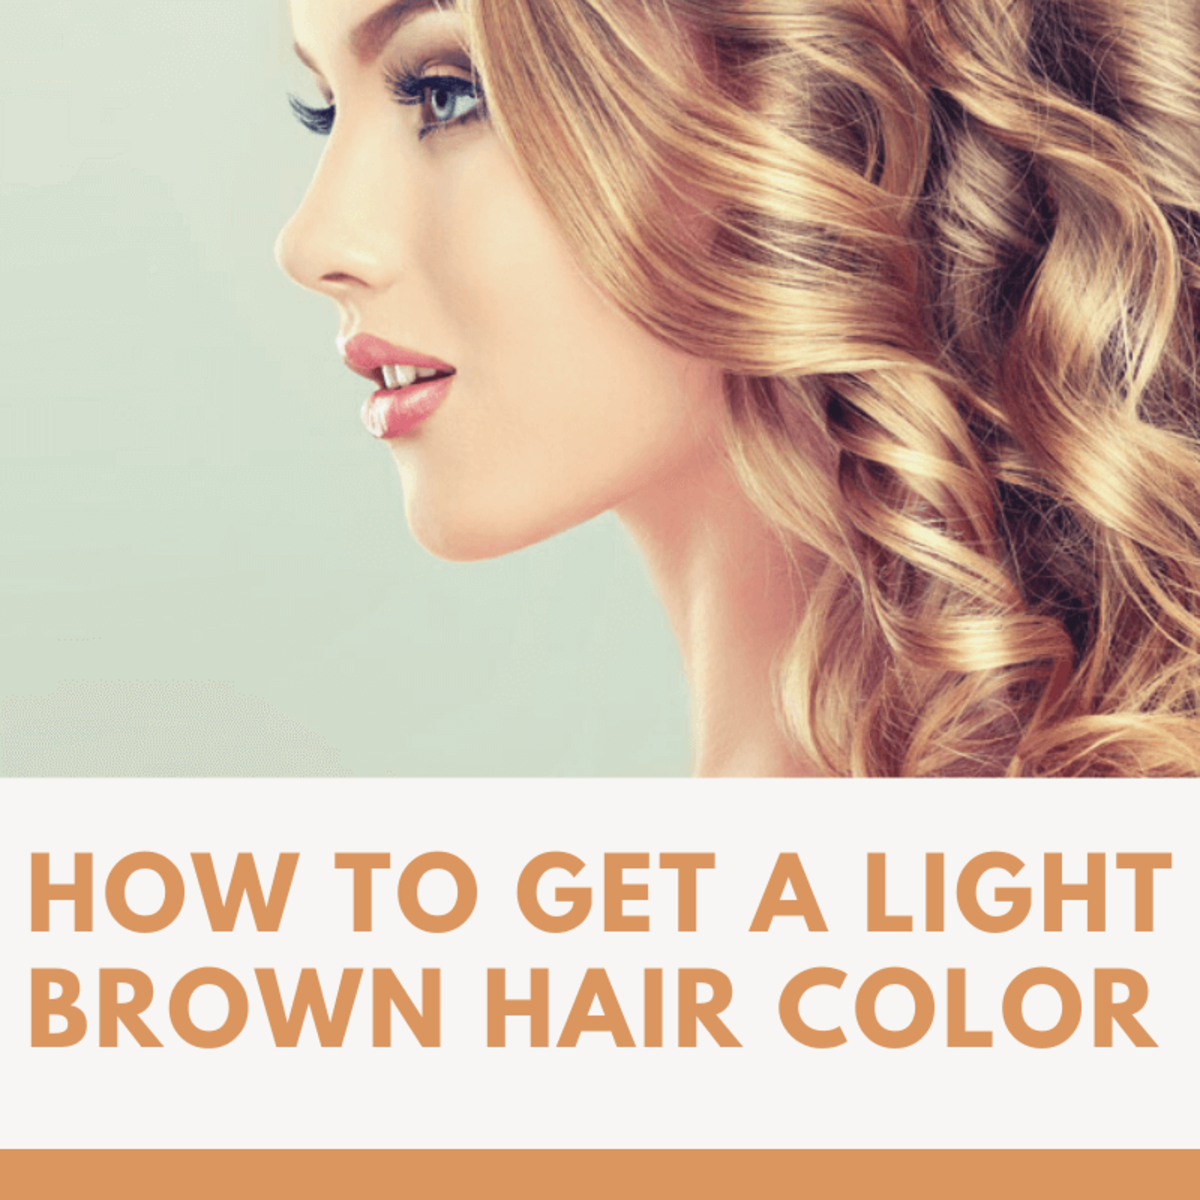 How to Get a Light Brown Hair Color